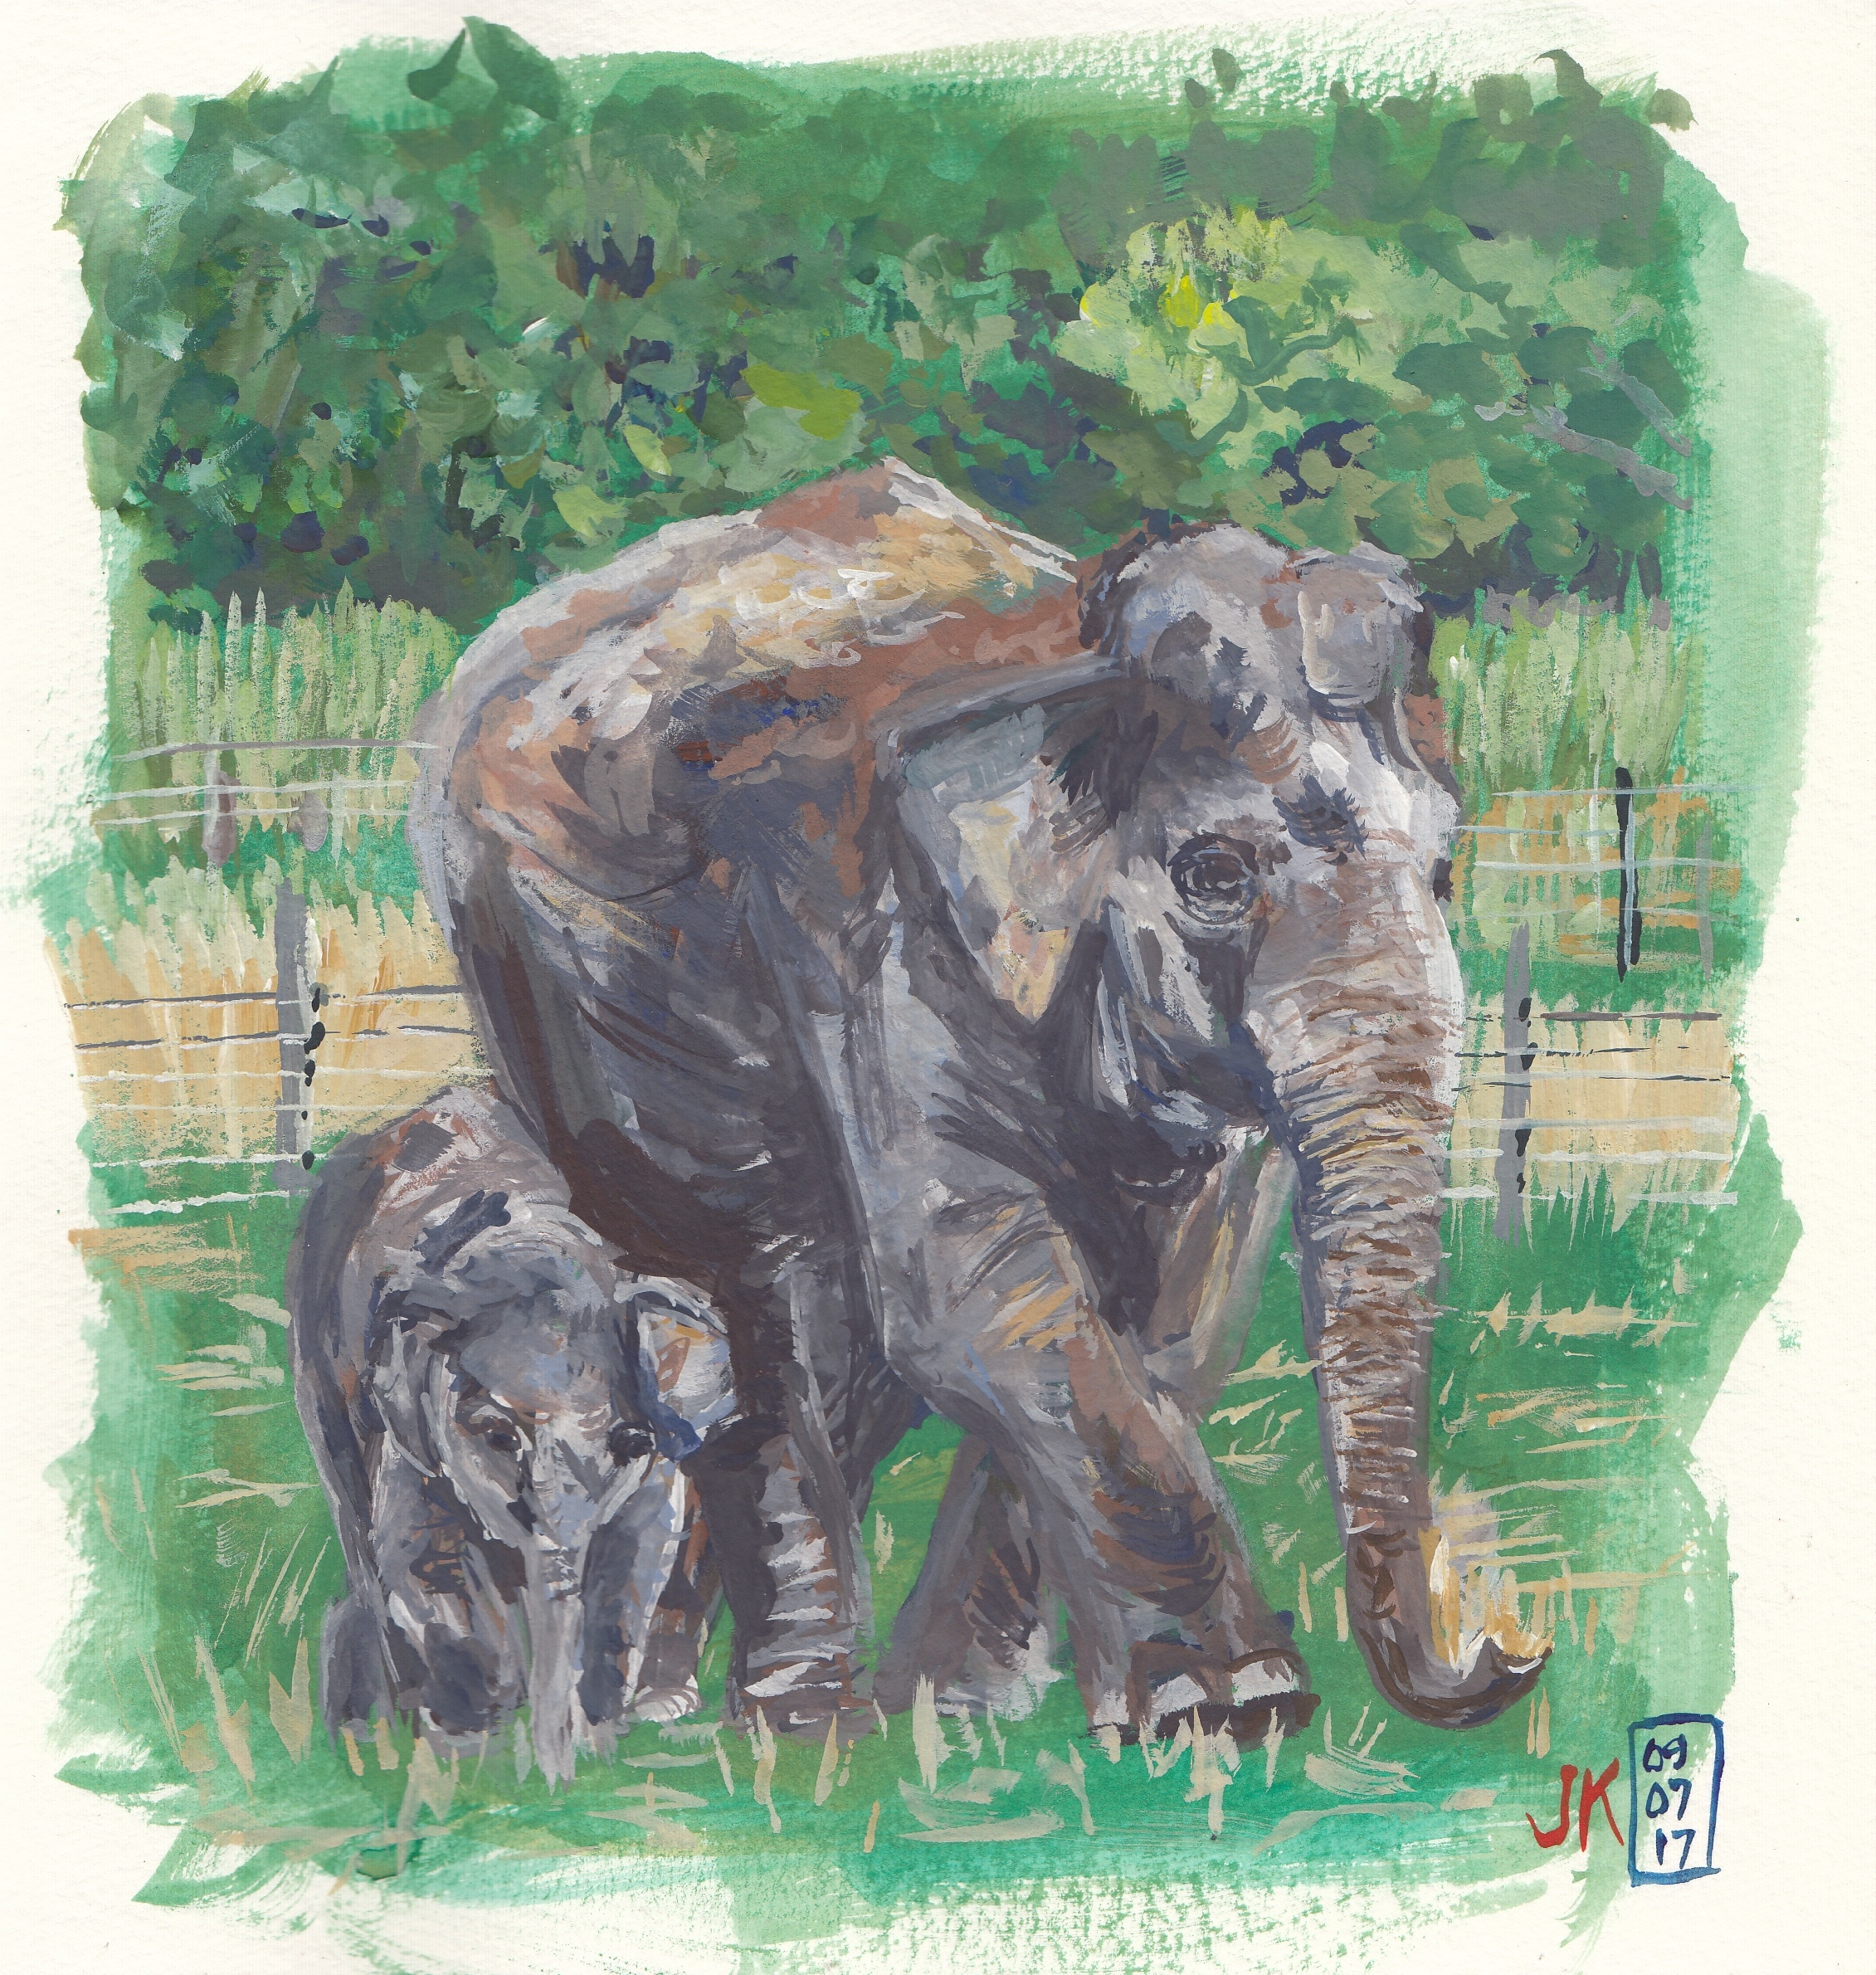 Elephants from Sktchy